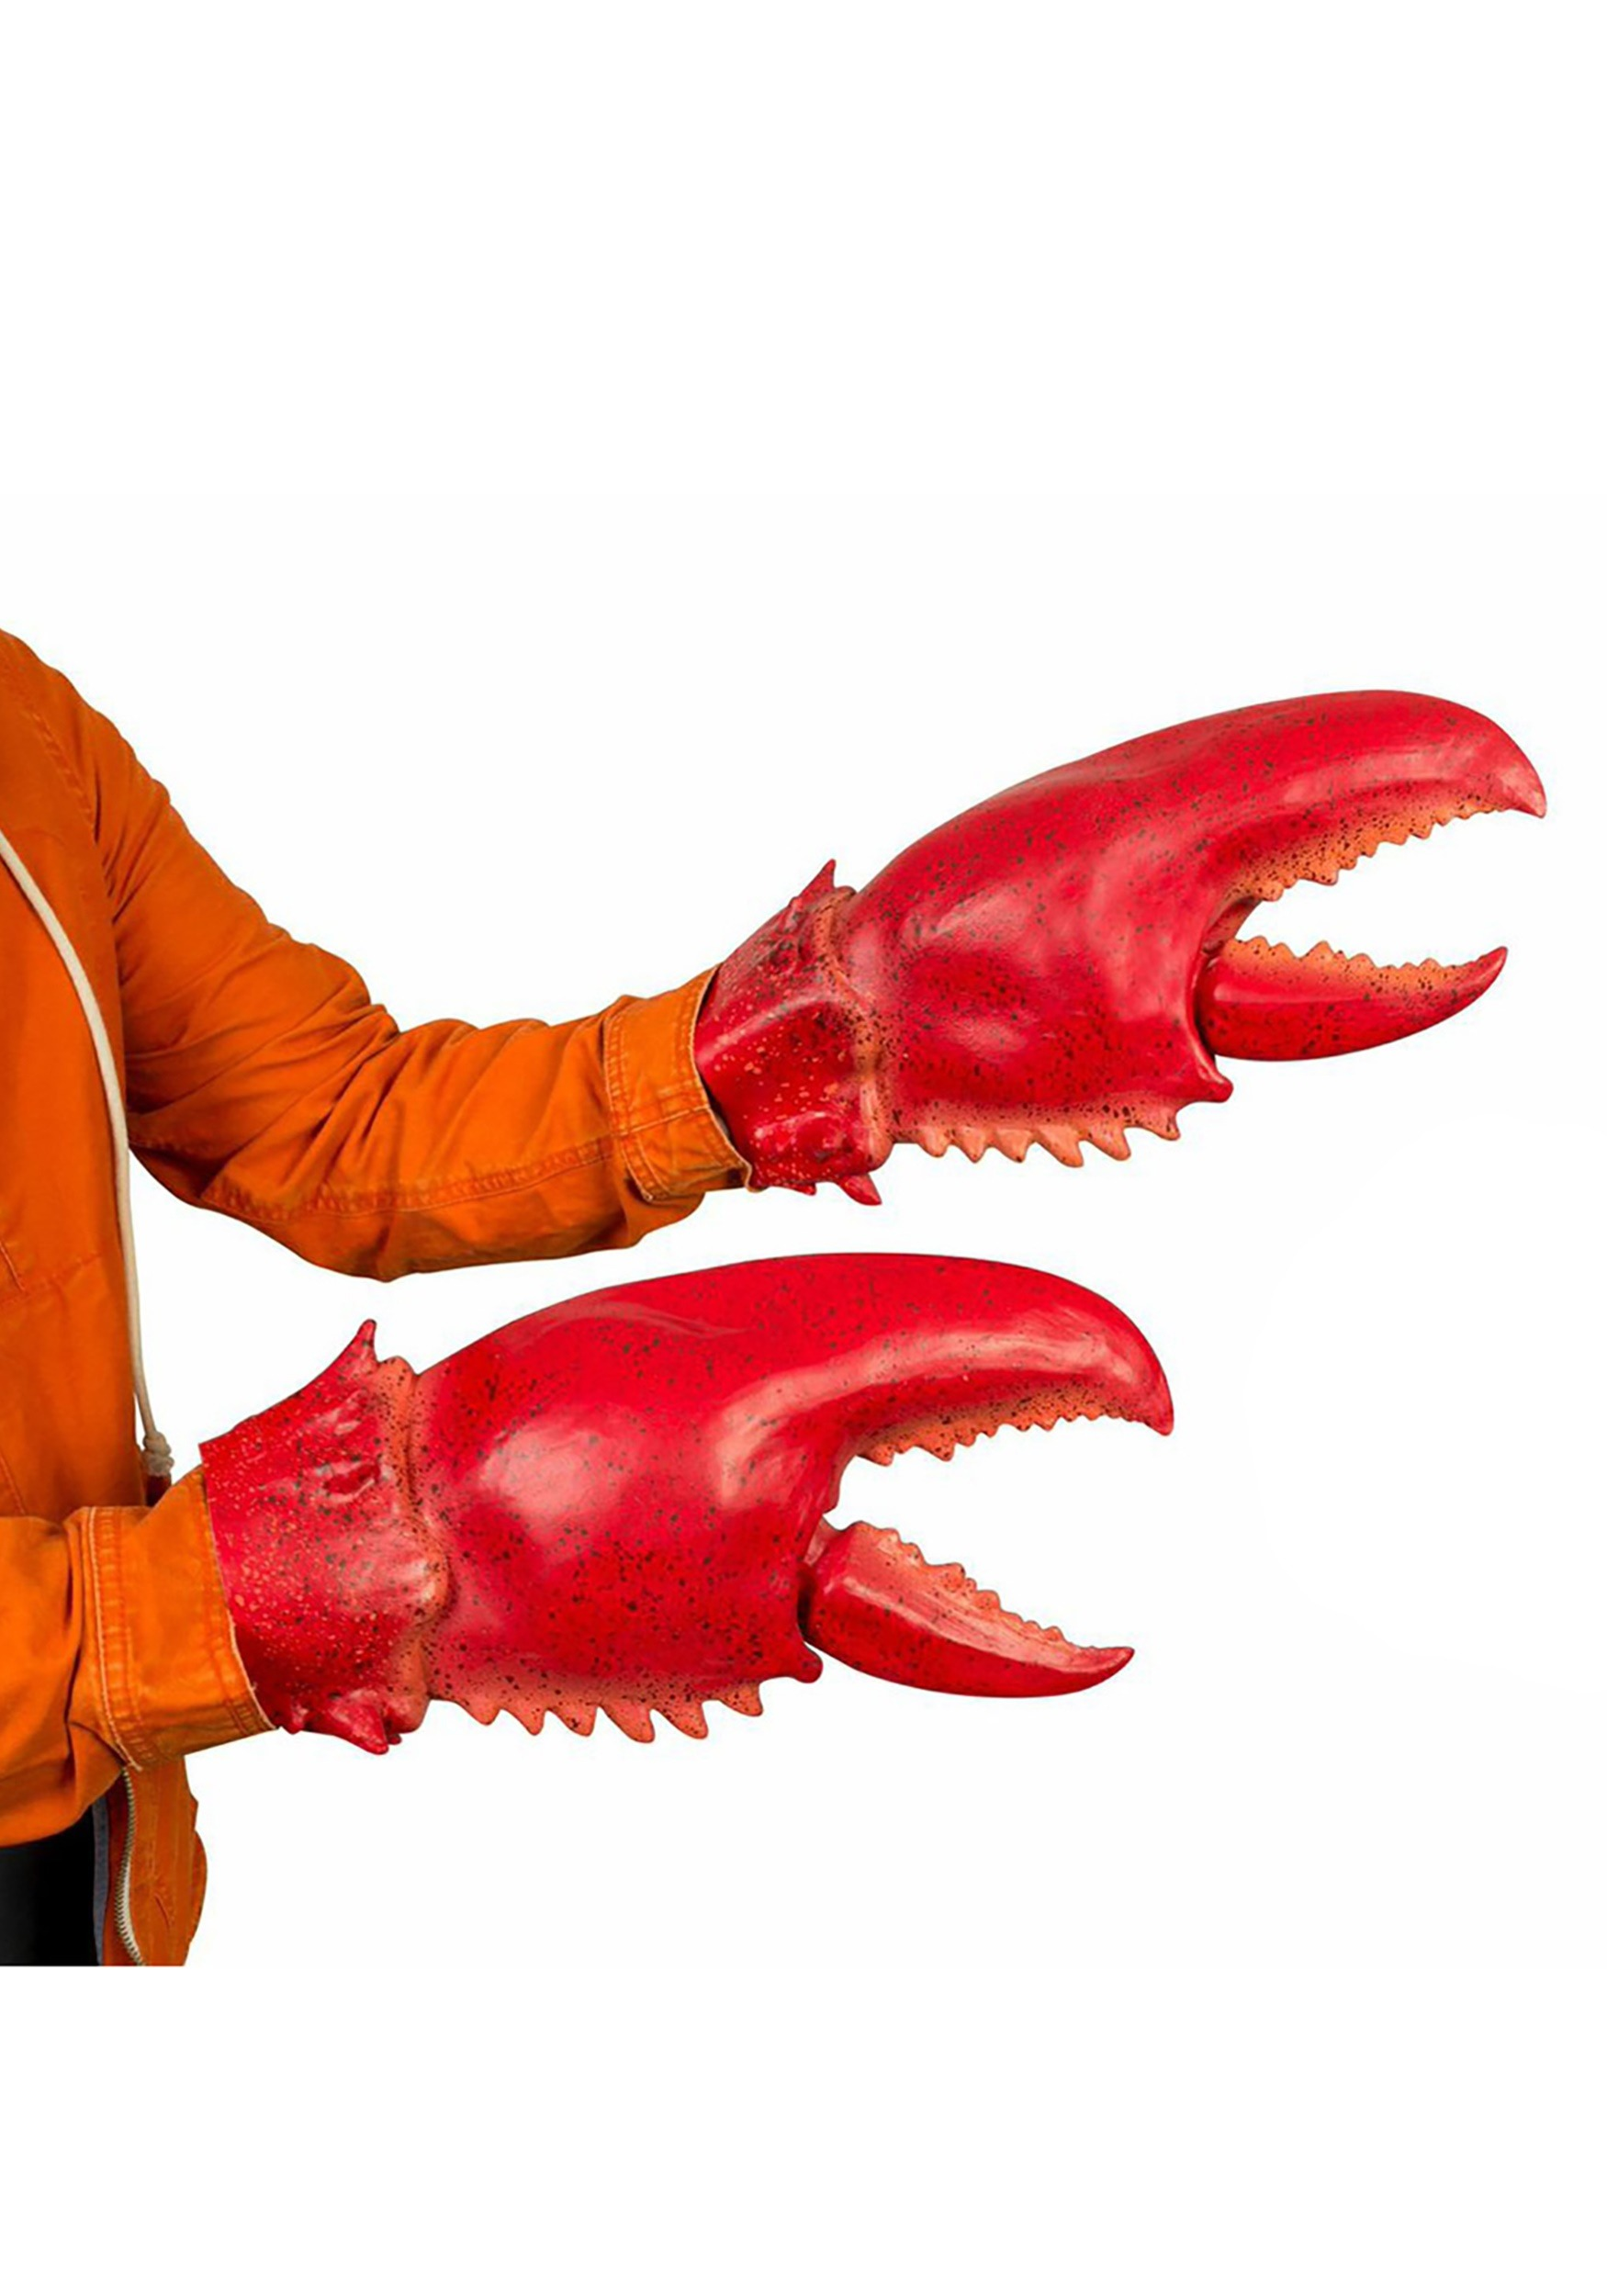 Lobster_Claws